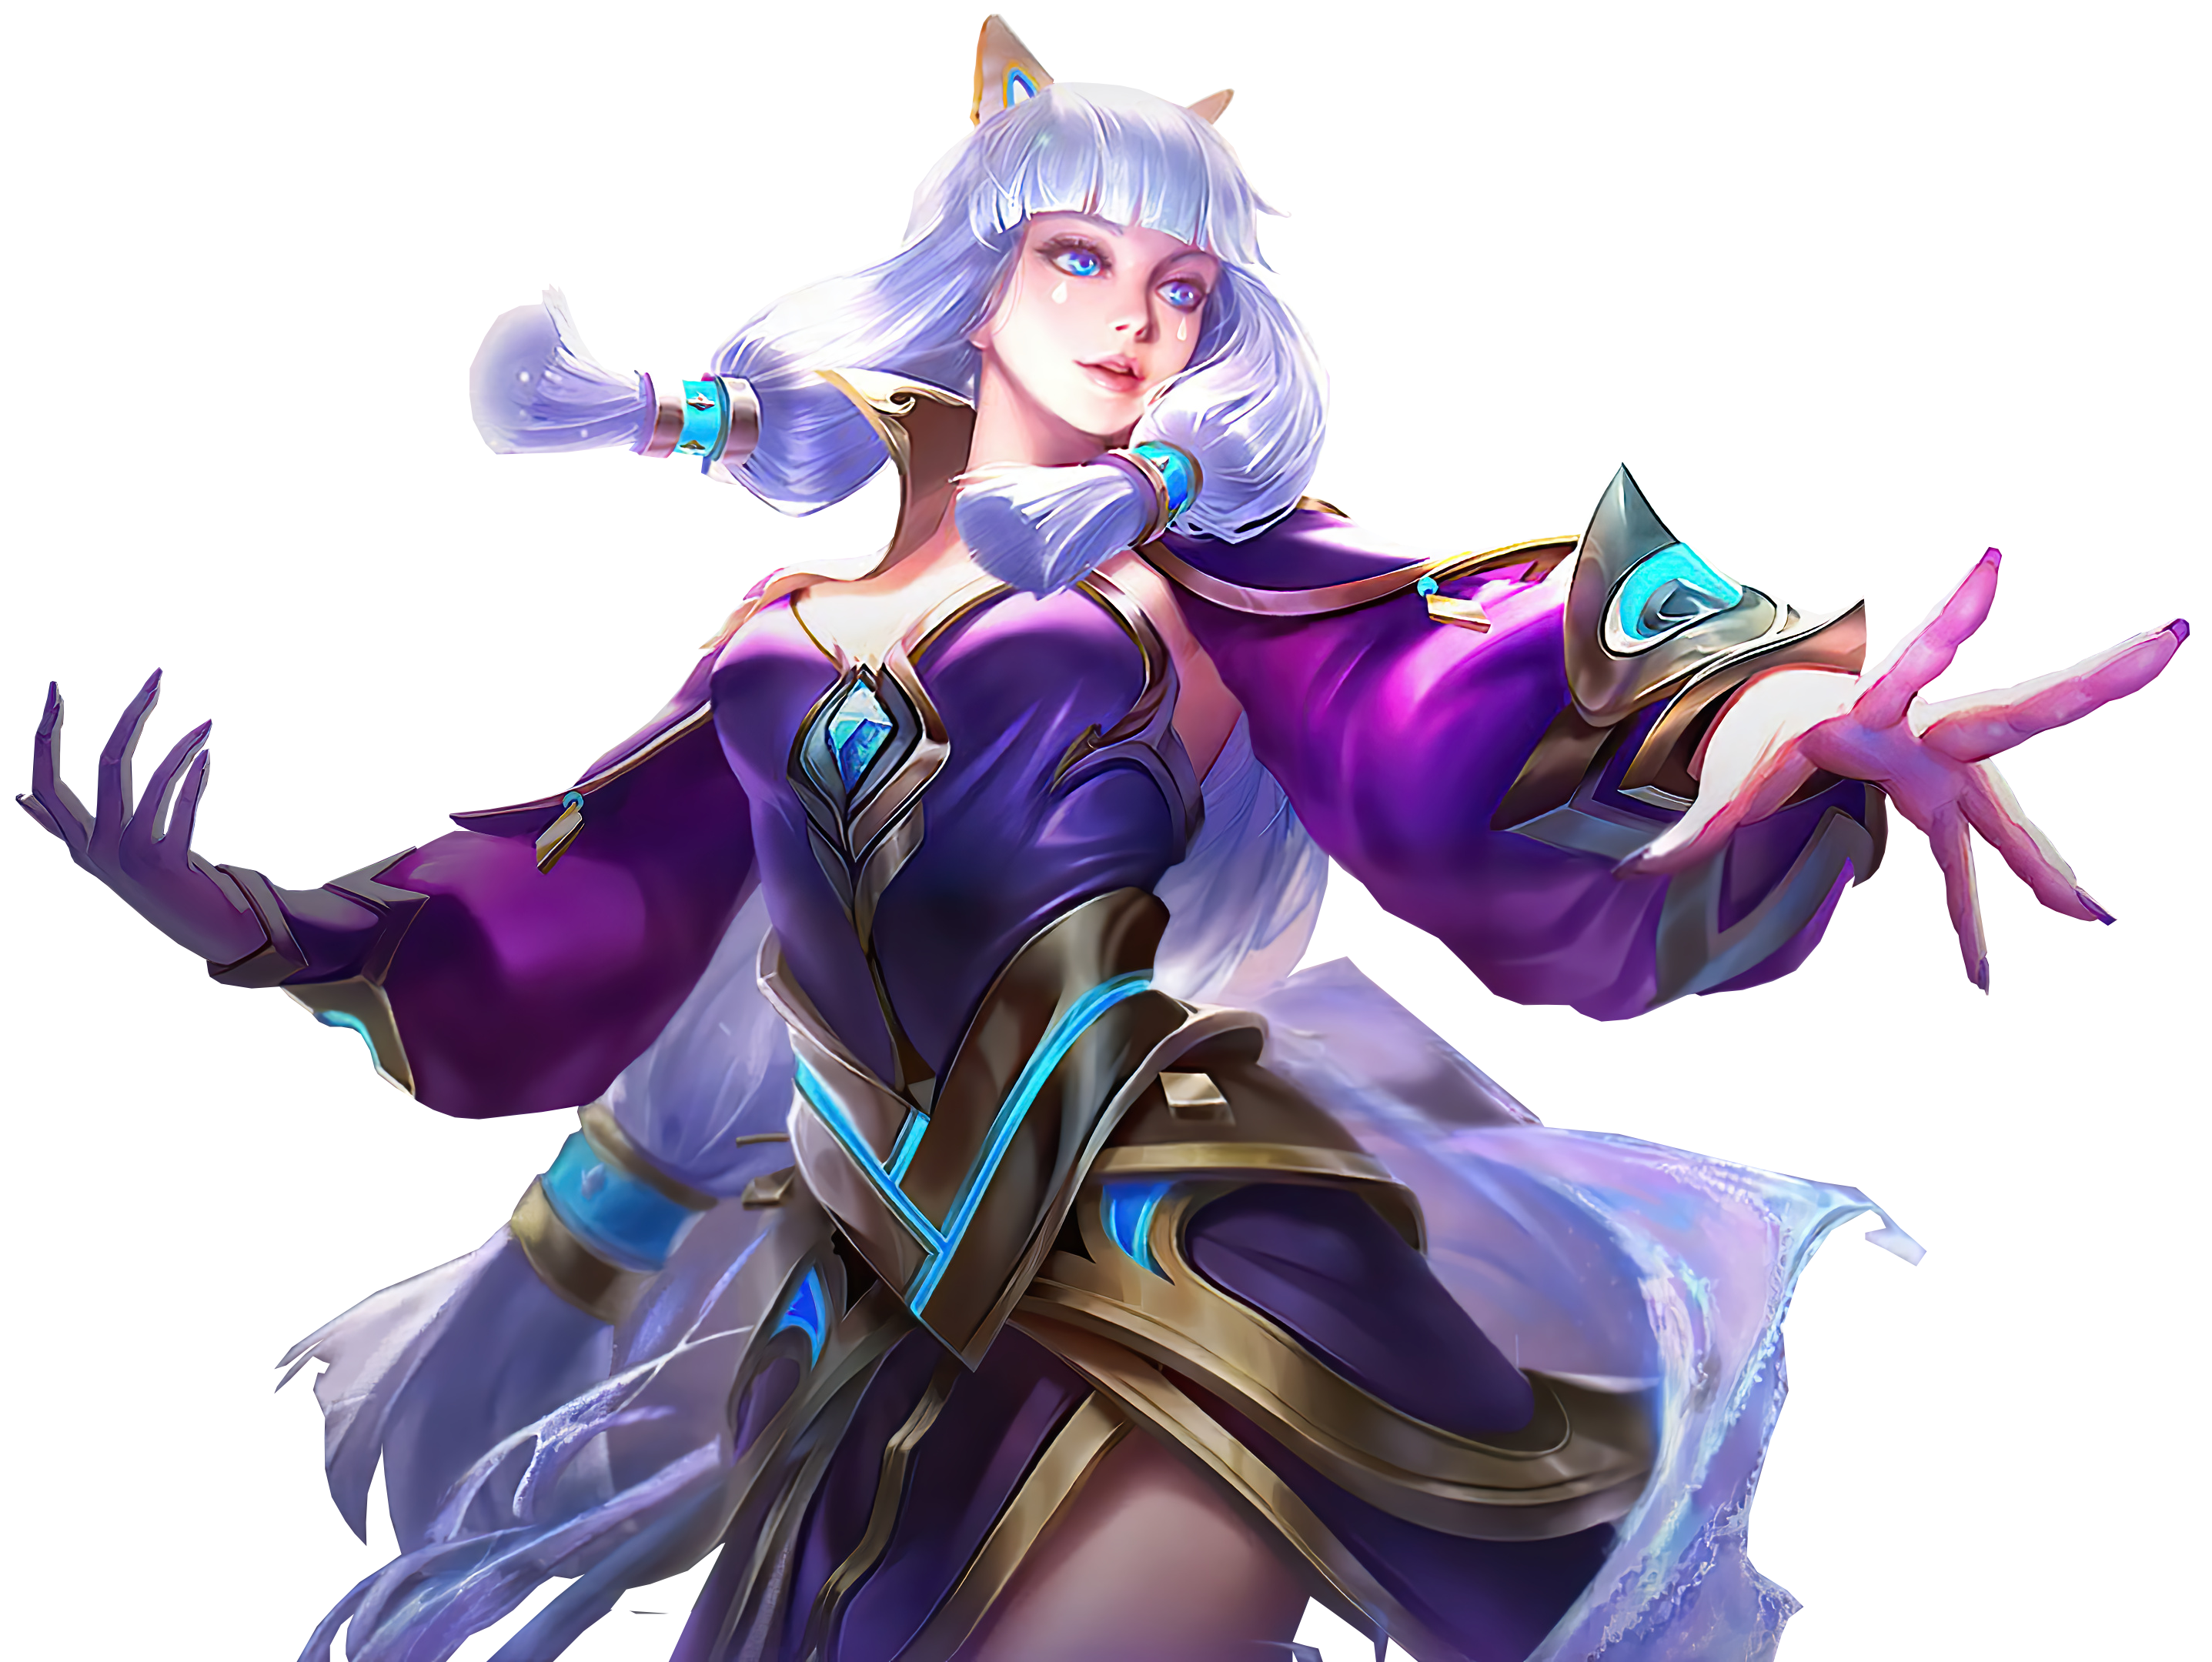 guinevere-amethyst-dance-mobile-legends-skin-uhdpaper.com-4K-3.1565.png